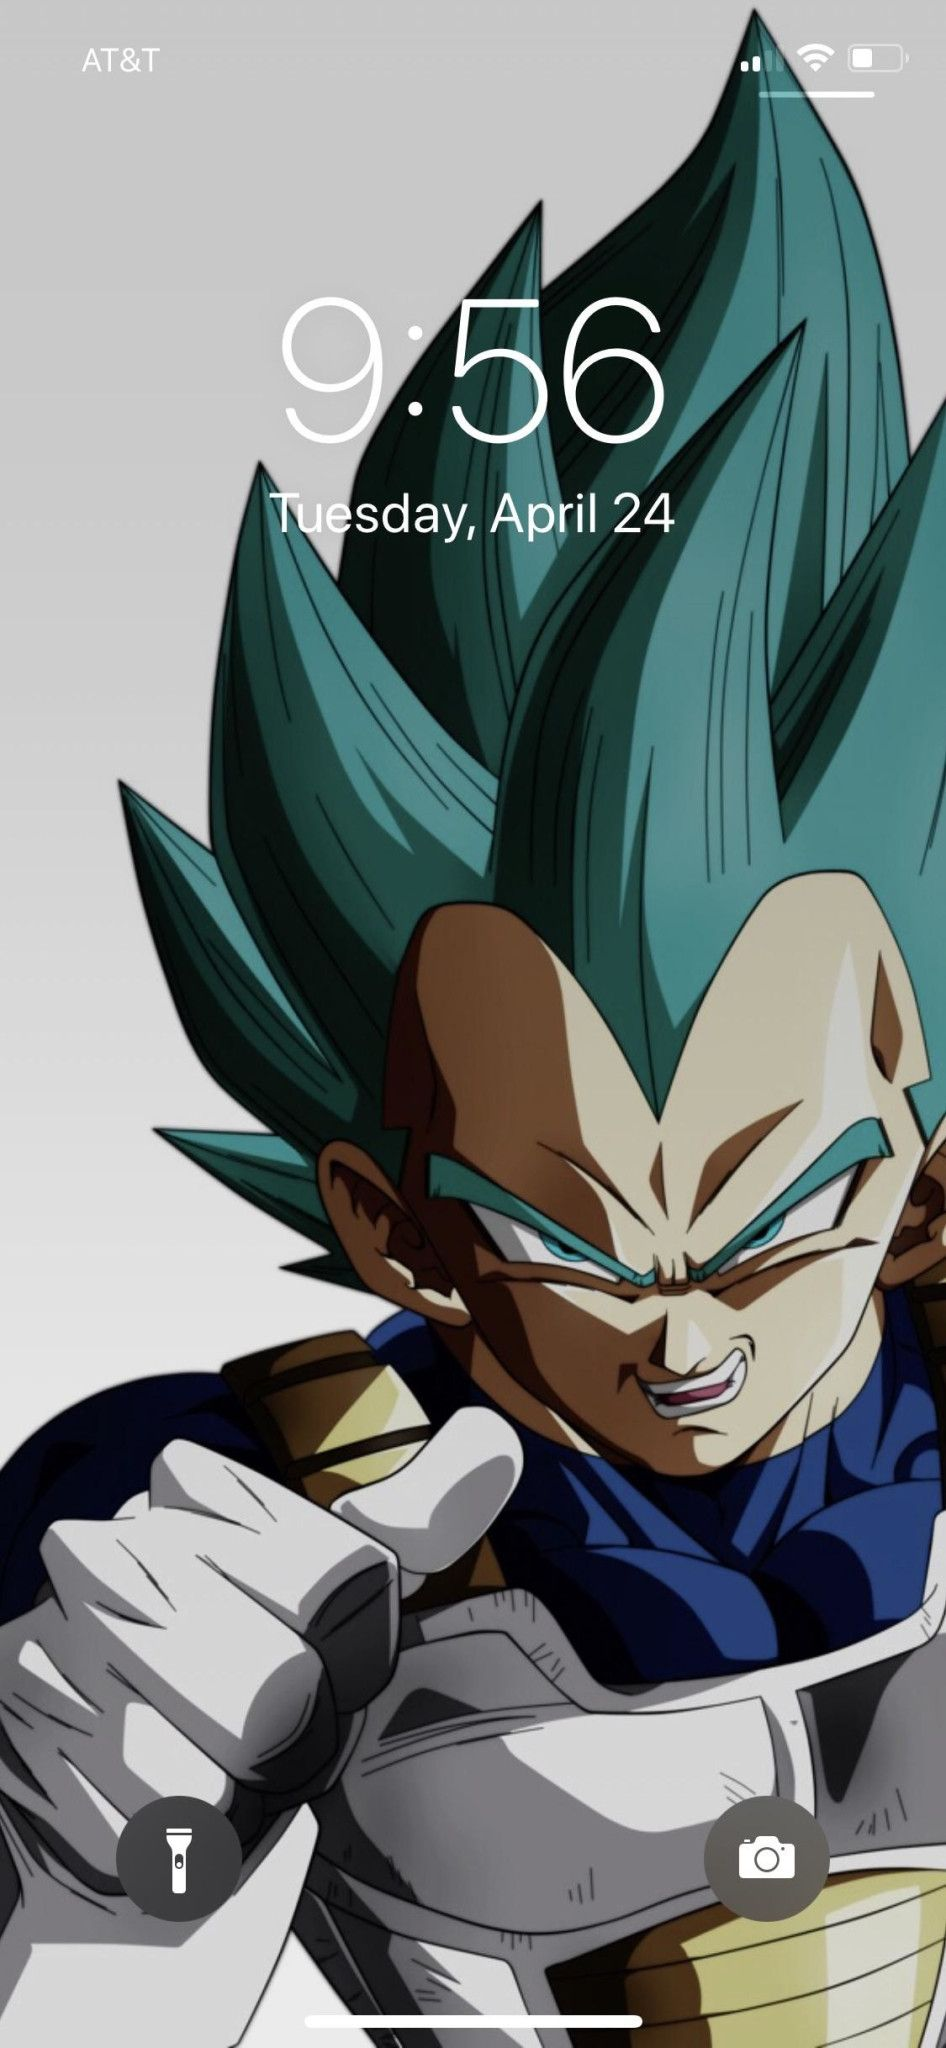 Iphone Wallpaper Images For Vegeta Iphonewallpaper In 2020 Iphone Wallpaper Images Iphone Wallpaper Hd Anime Wallpapers